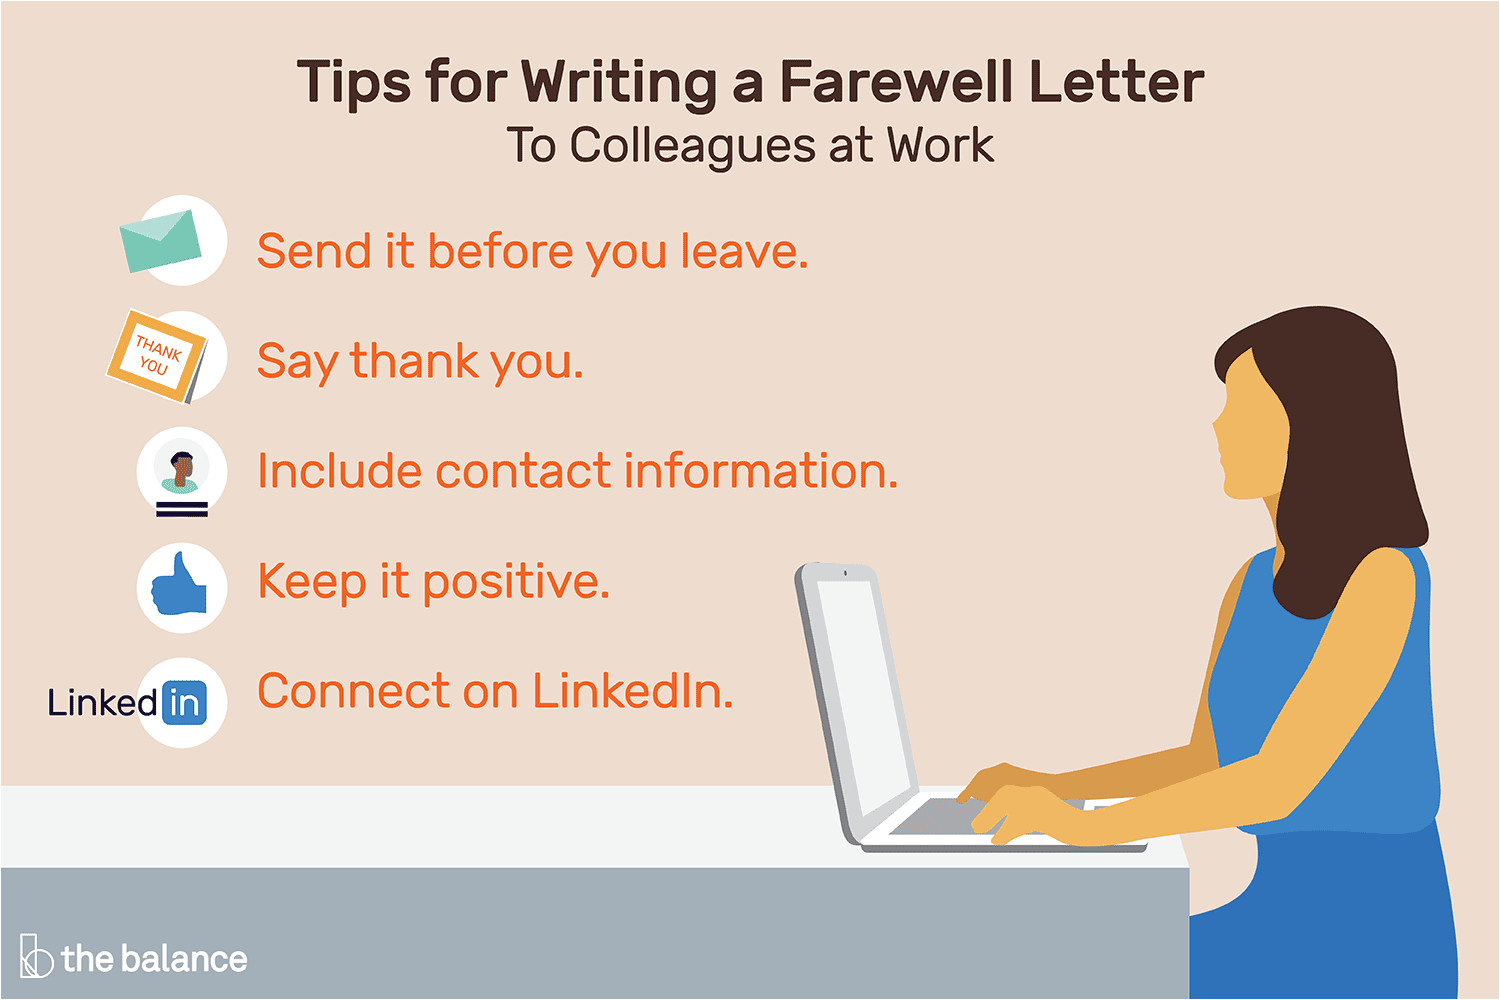 farewell letter saying goodbye to colleagues 2063024 final 5ba5275546e0fb0057d44746 png